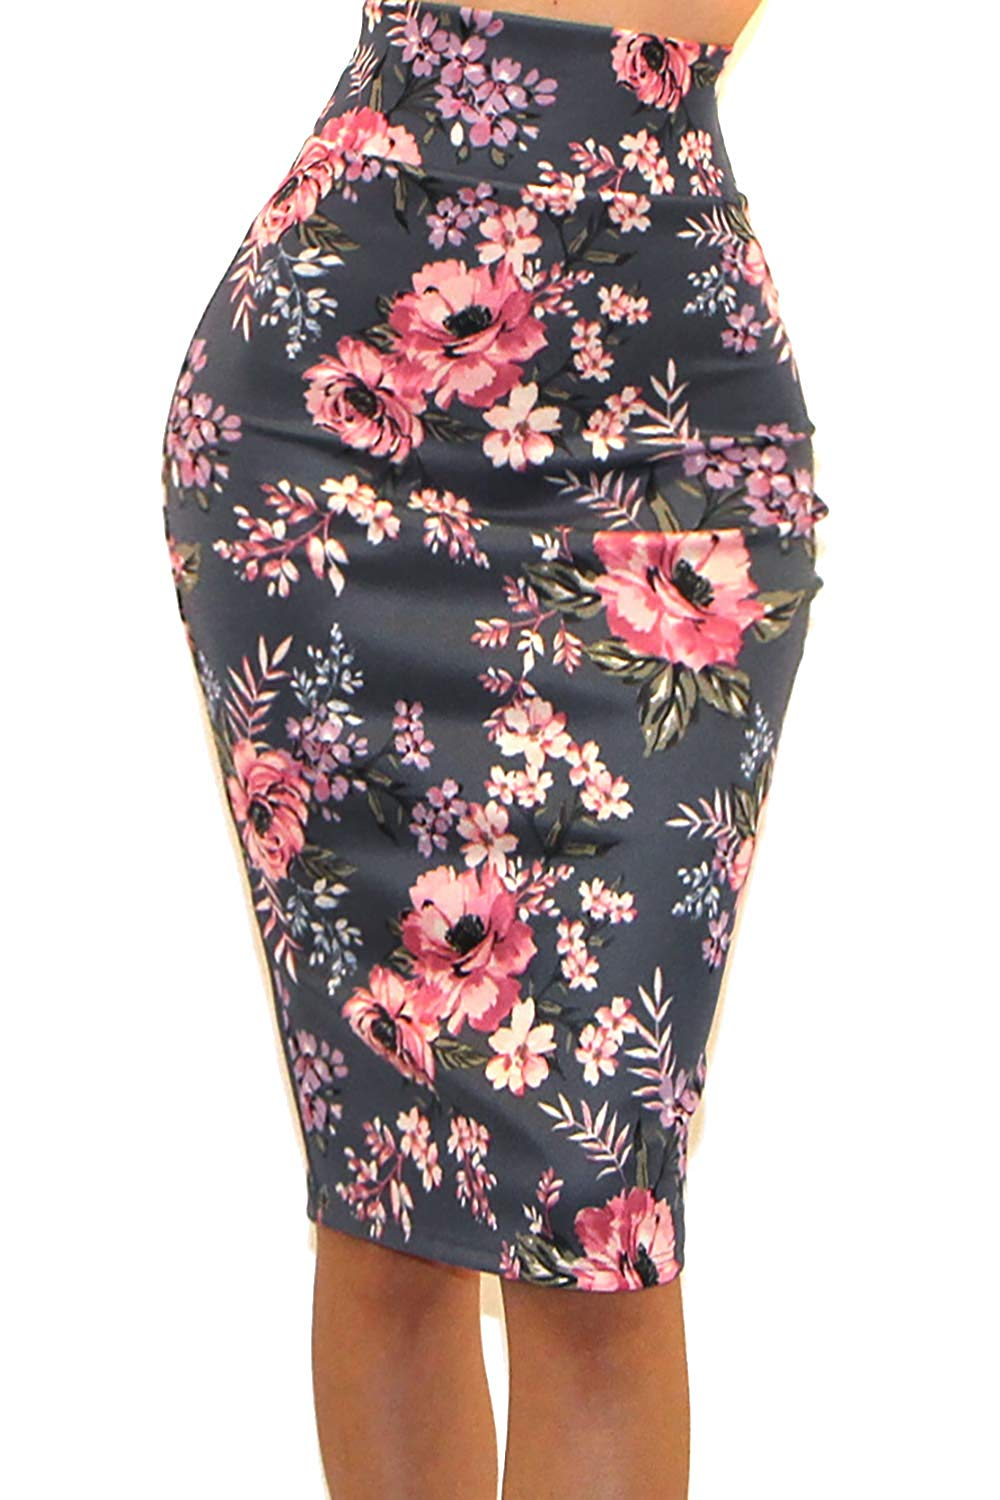 Women's USA High Waist Band Bodycon Career Office Midi Pencil Skirt